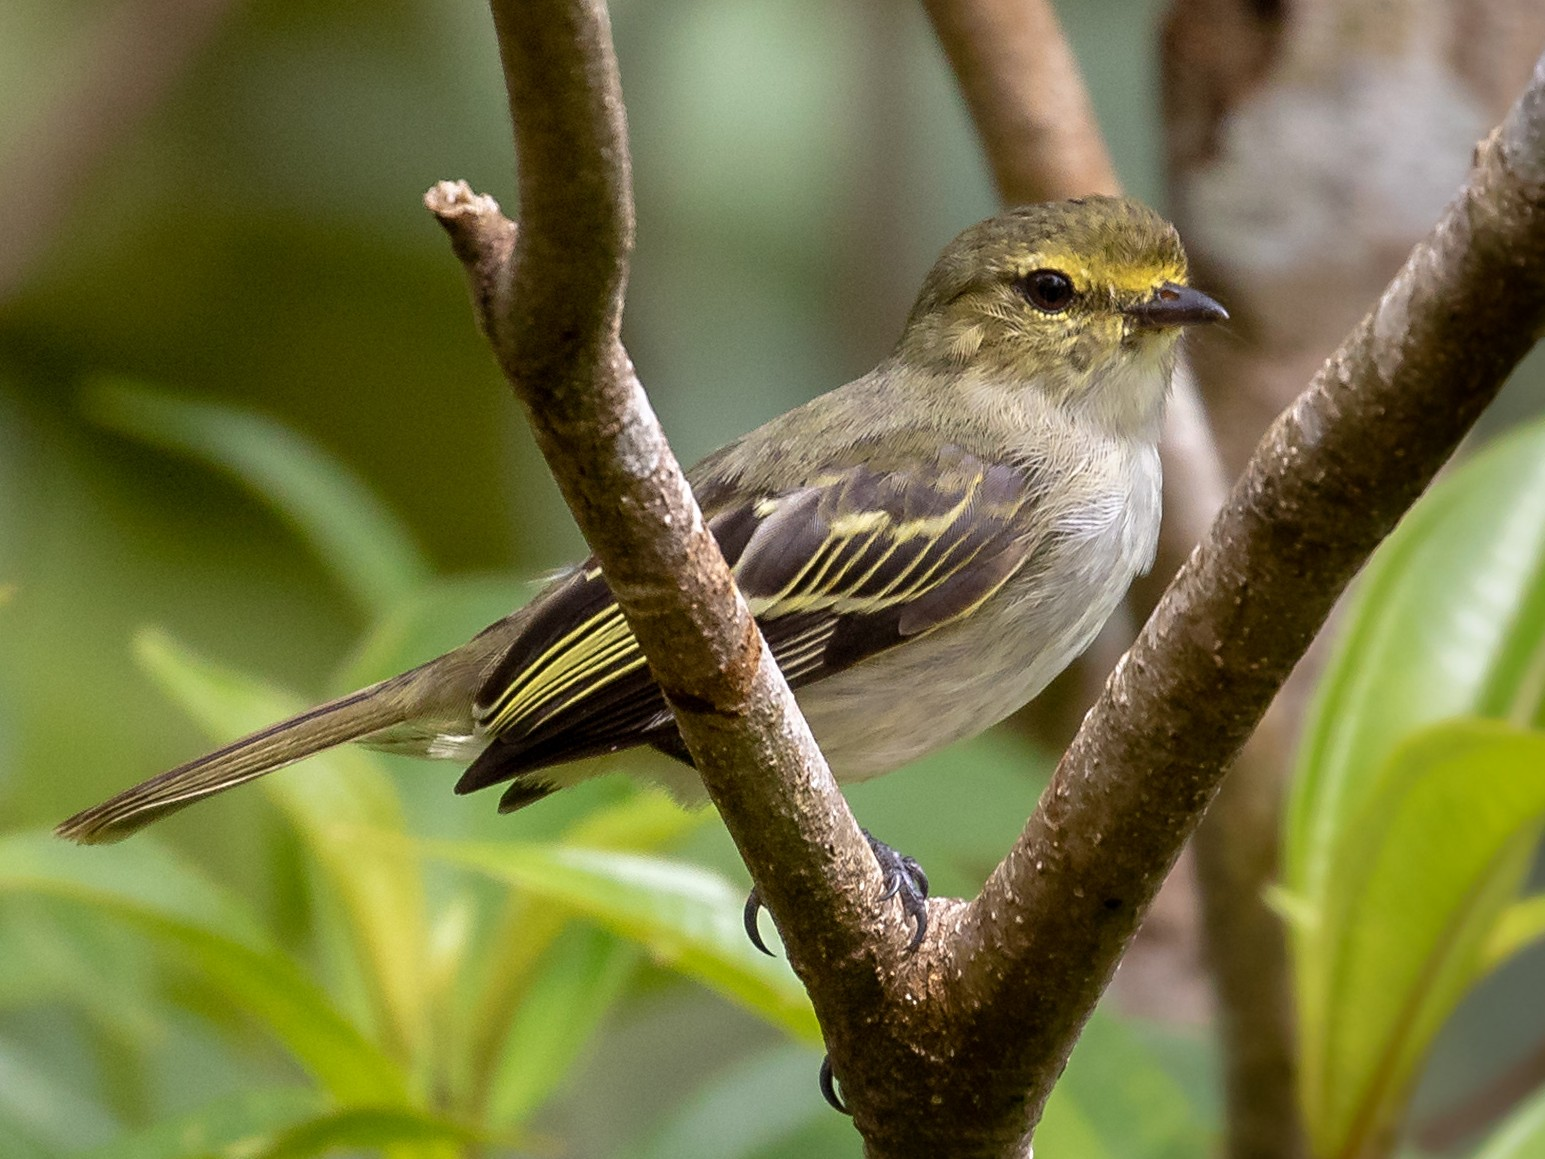 Golden-faced Tyrannulet - Drew Weber